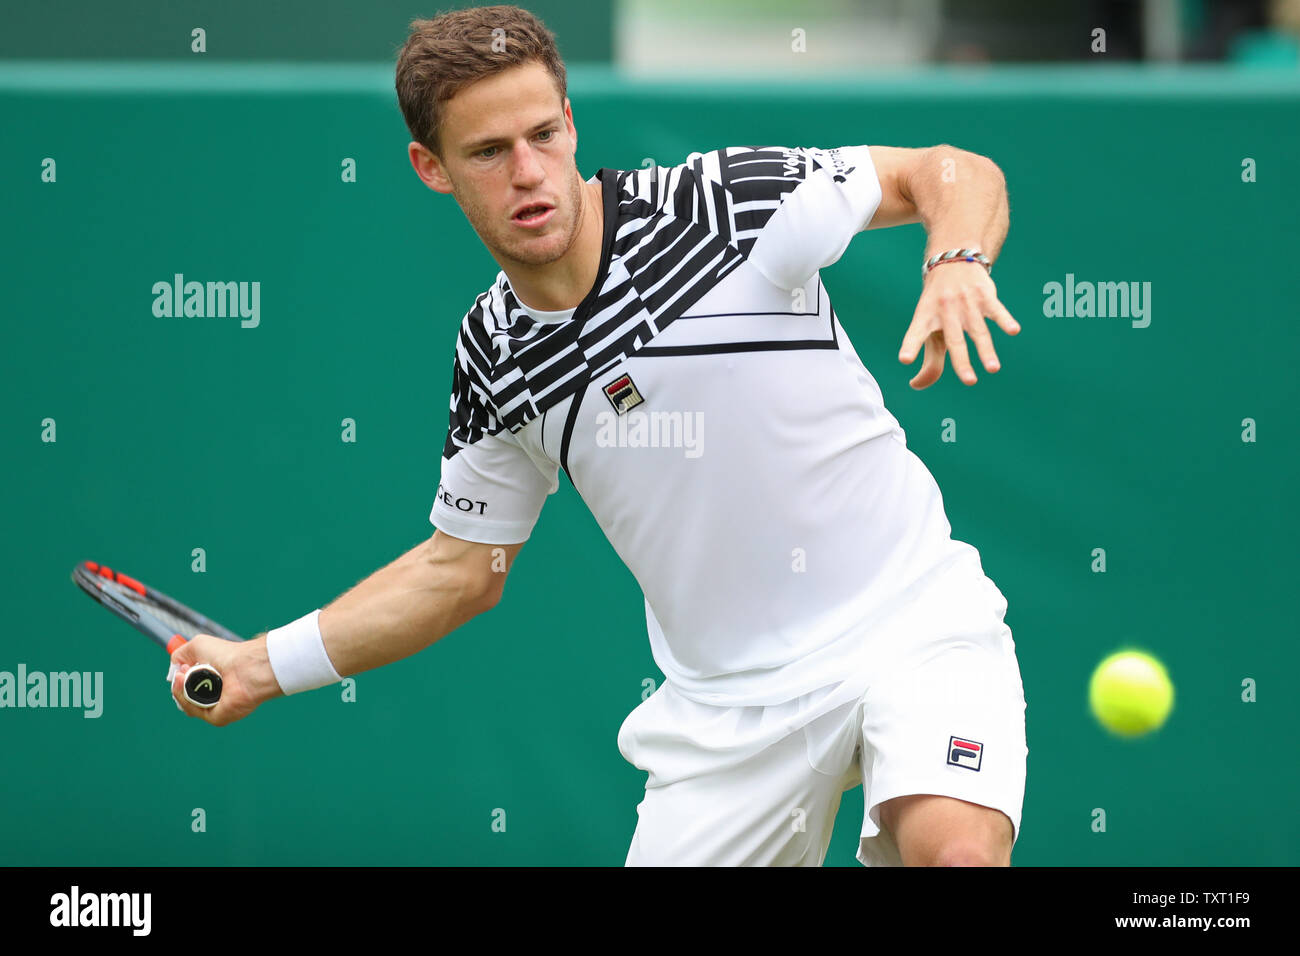 Stoke Poges Slough Berkshire Uk 25th June 2019 Diego Schwartzman Arg Plays A Forehand During The